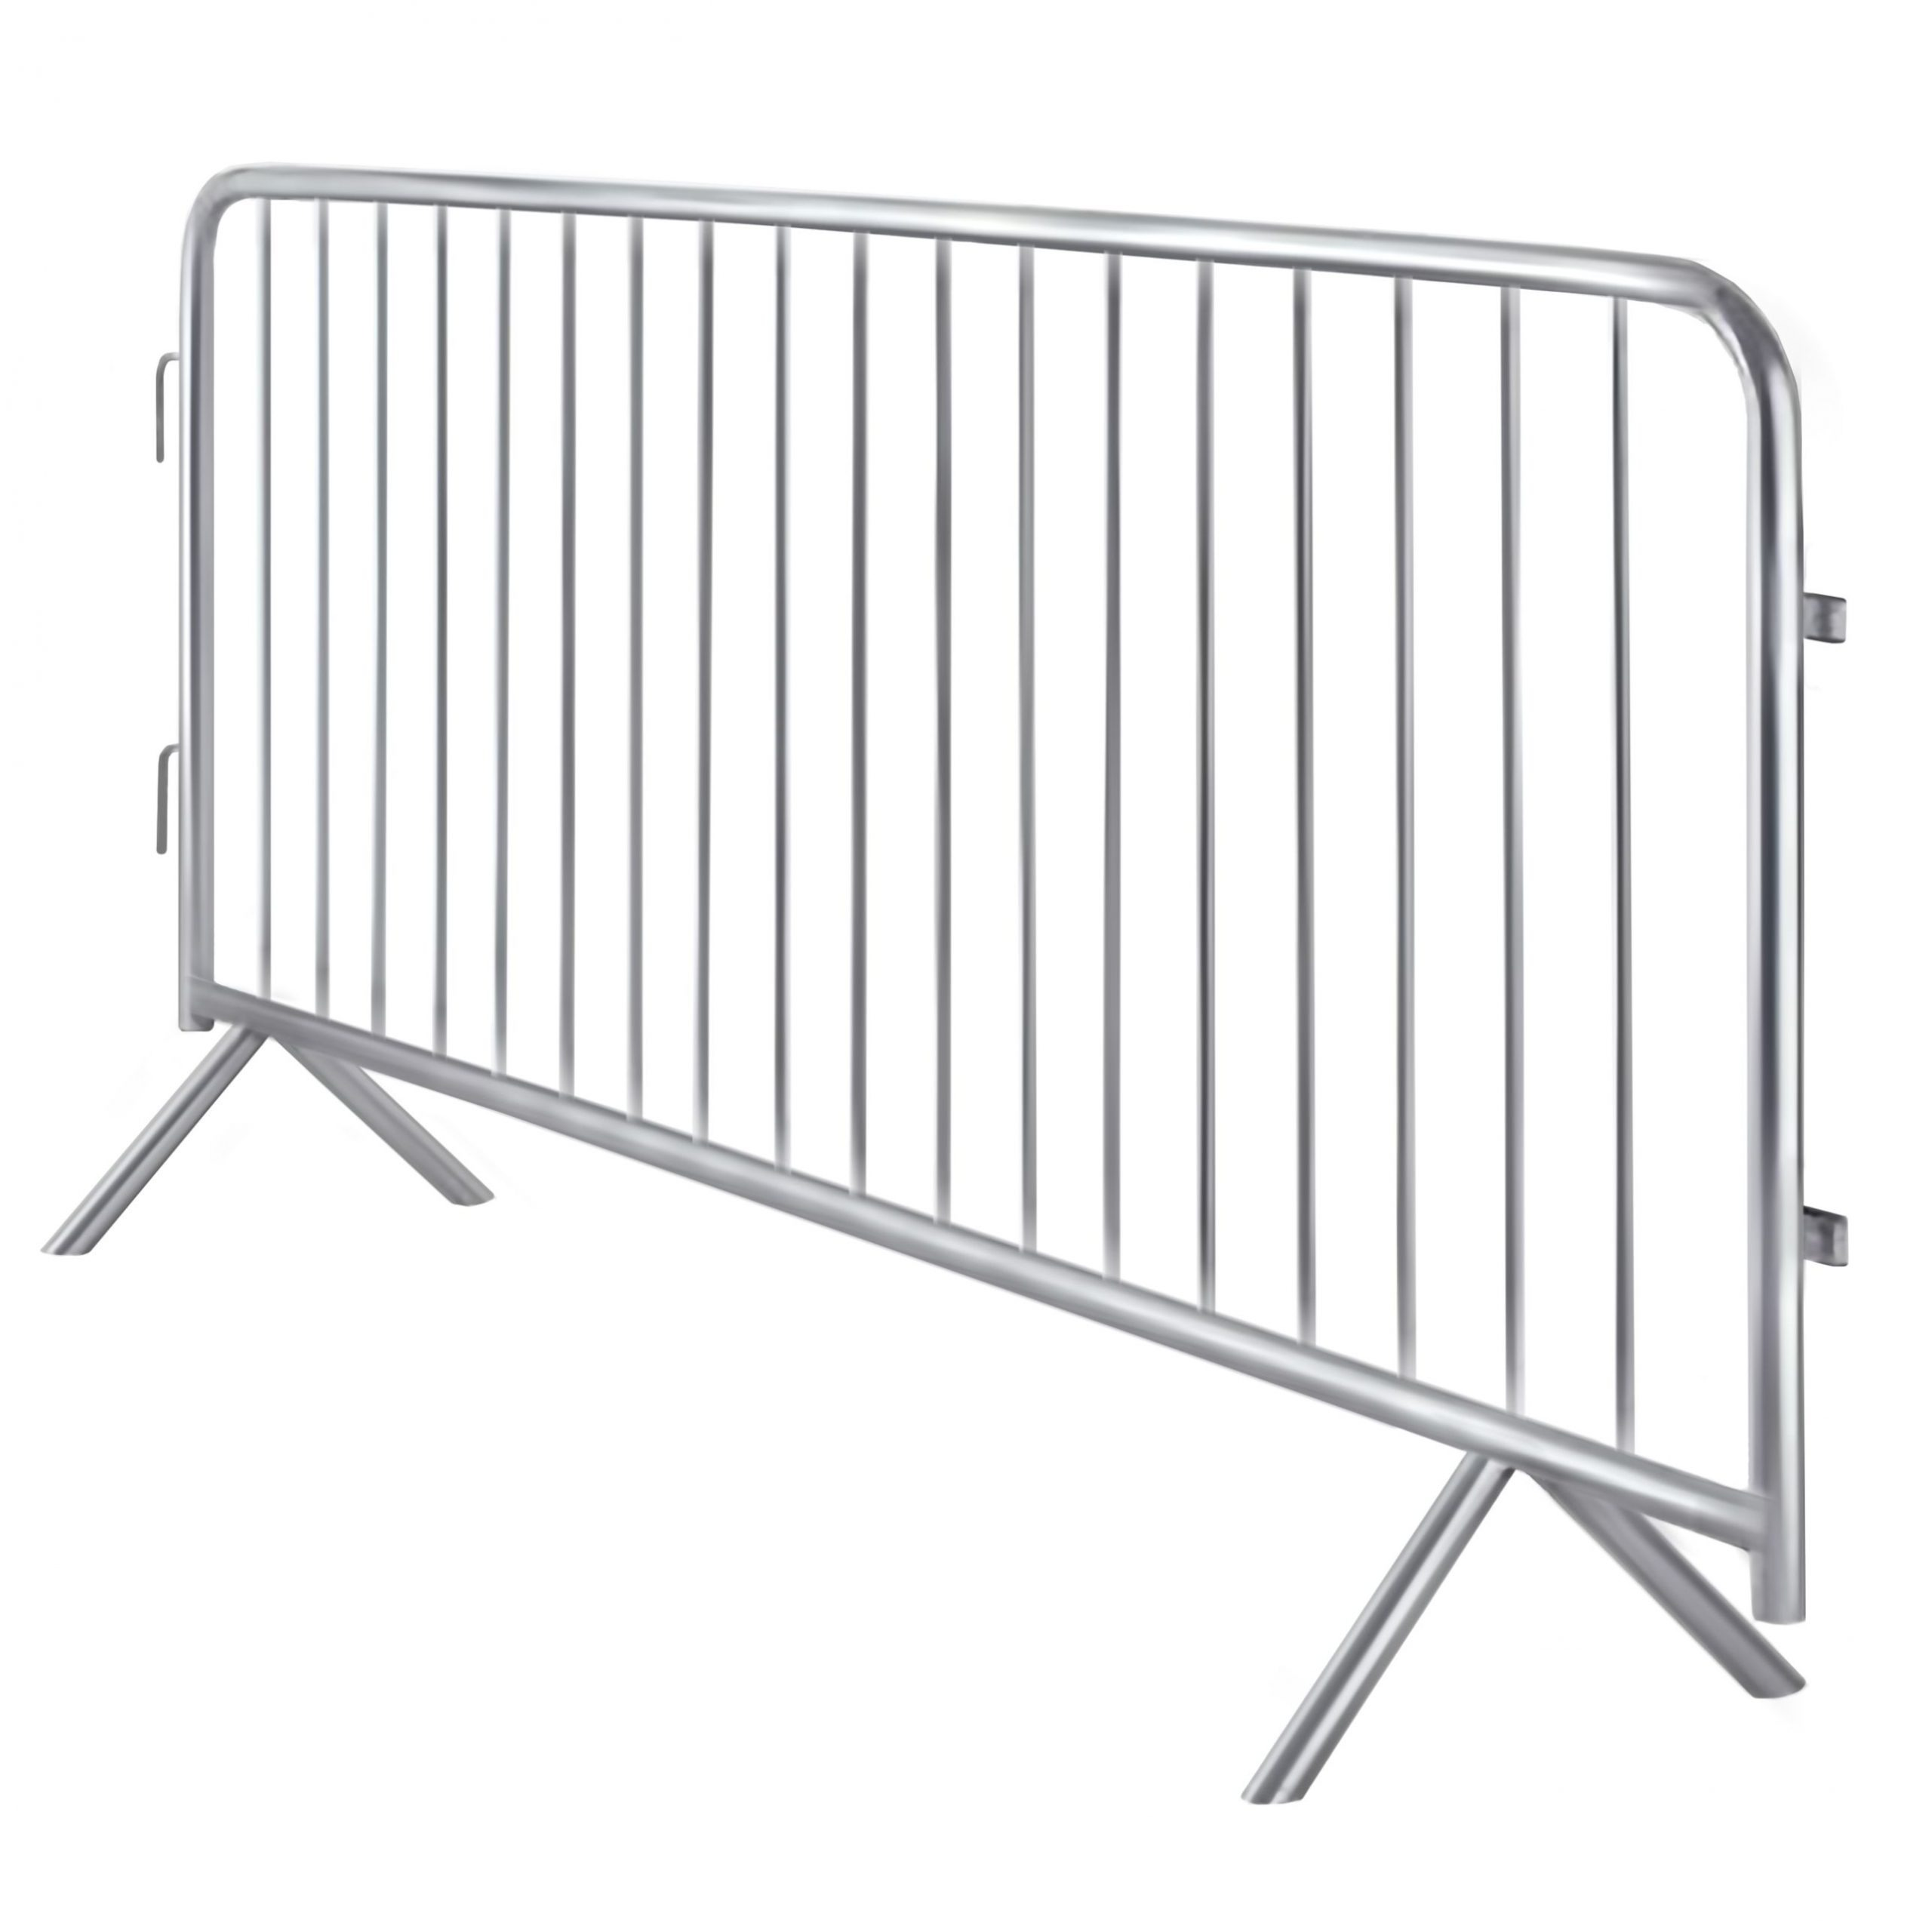 hire crowd control barrier Crowd Control Barrier 1 6 DONE scaled Sarah's Hire